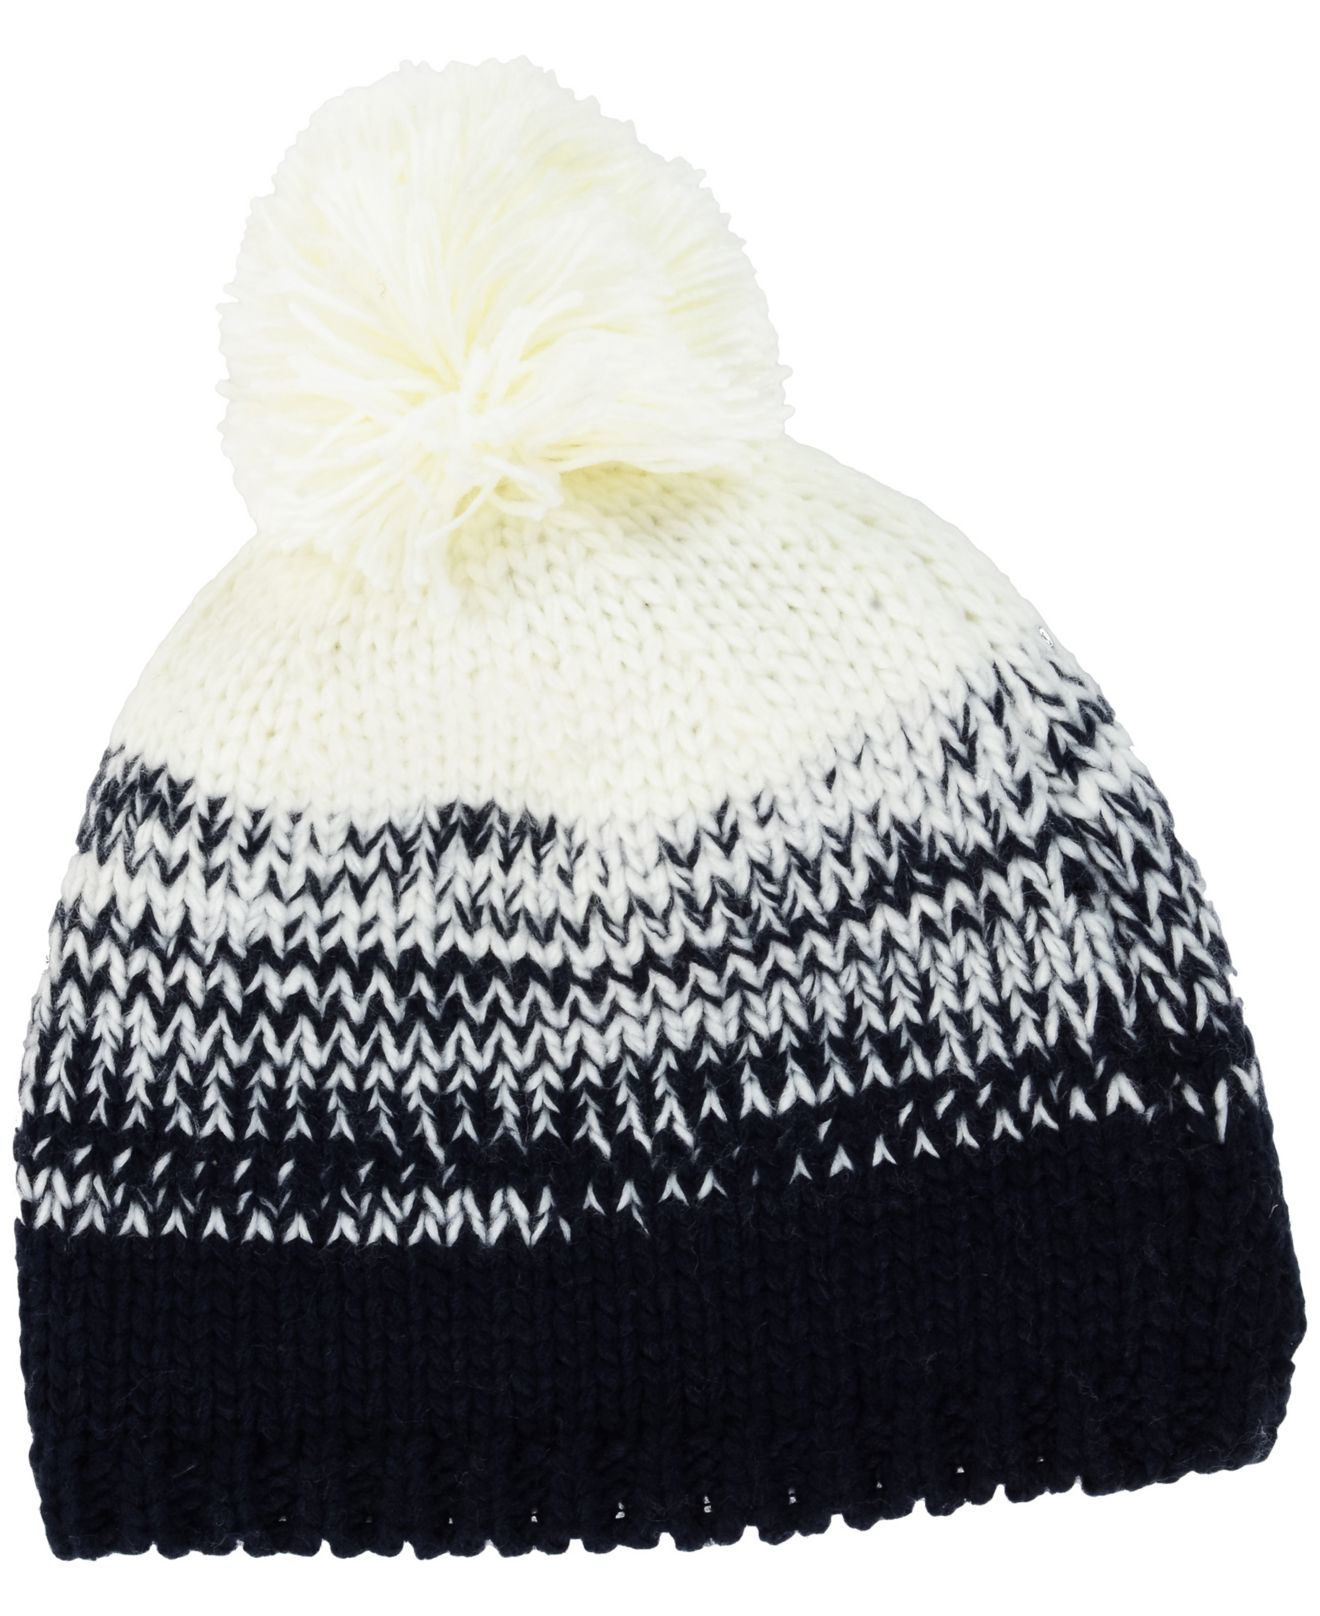 Women's Tennessee Titans New Era Navy Polar Dust Uncuffed Knit Beanie with Pom